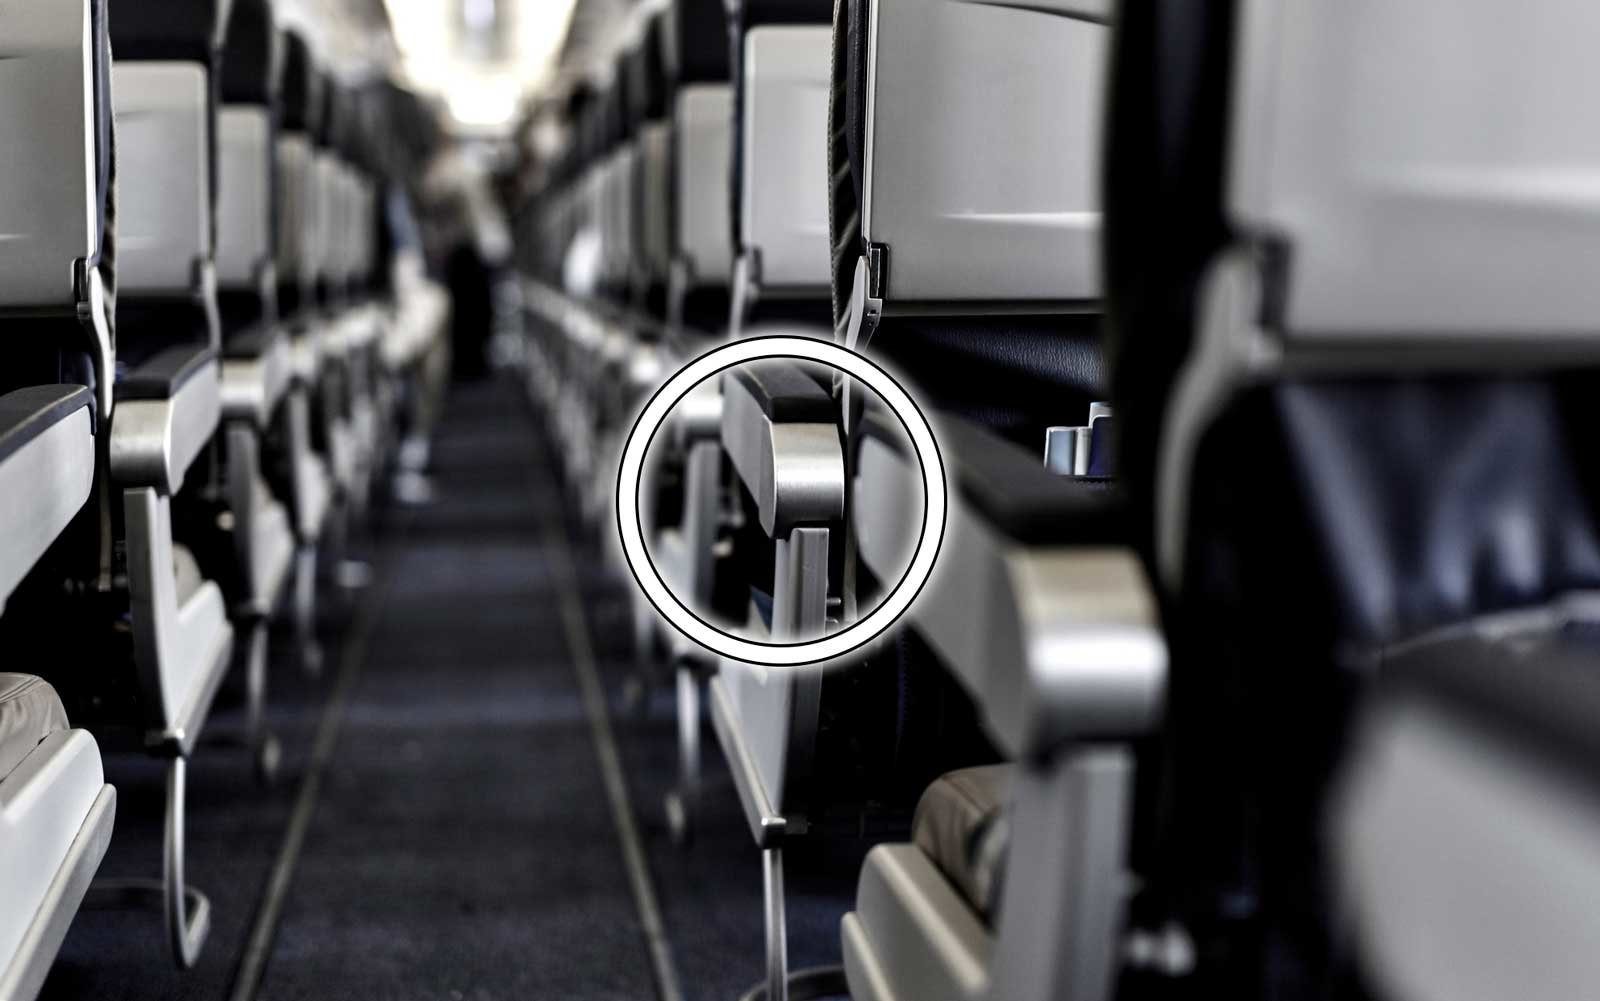 Aisle Seat Secret Button